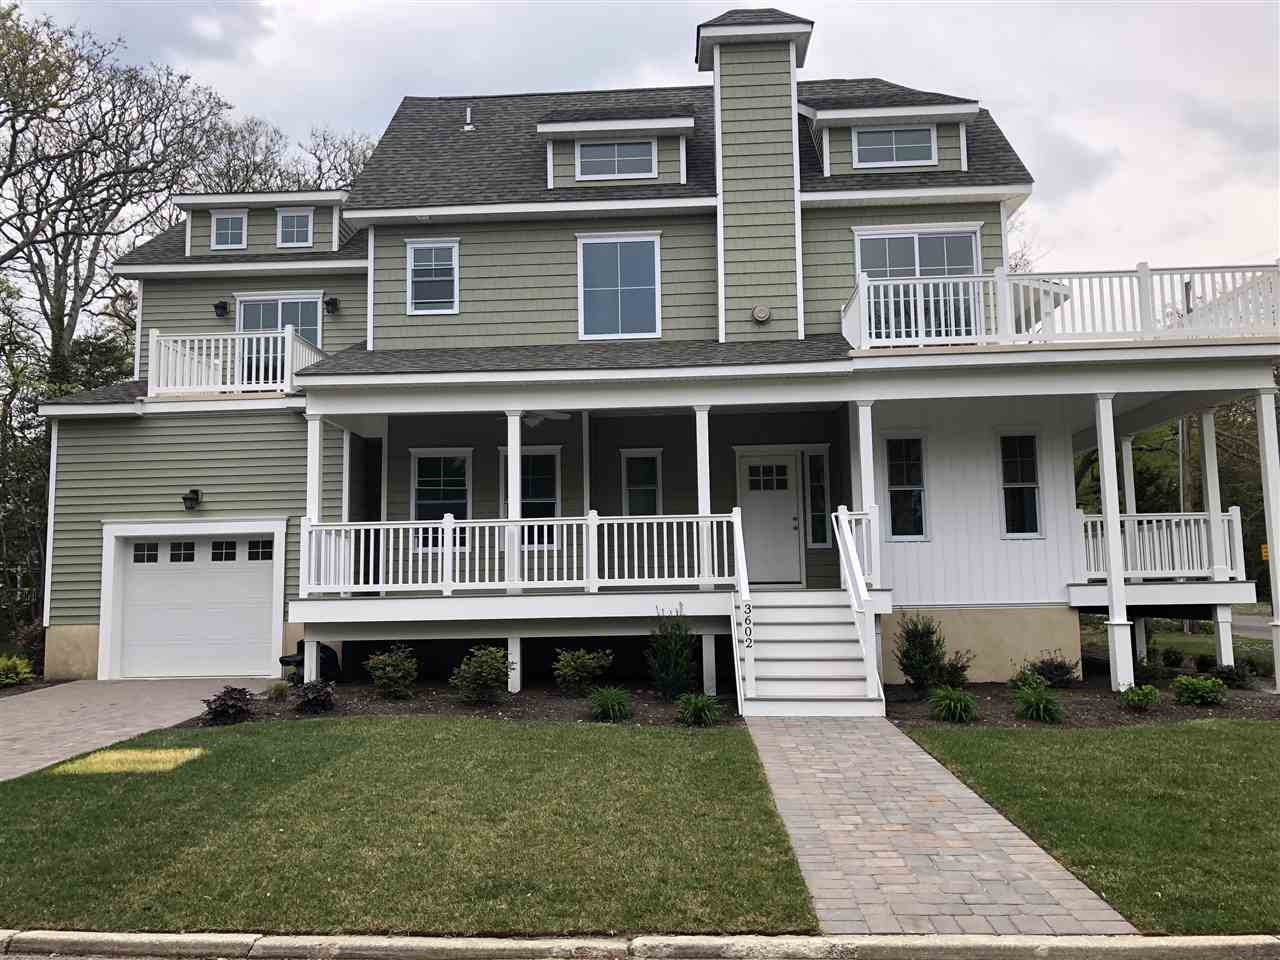 3602 Shore, Cape May Beach, NJ 08251